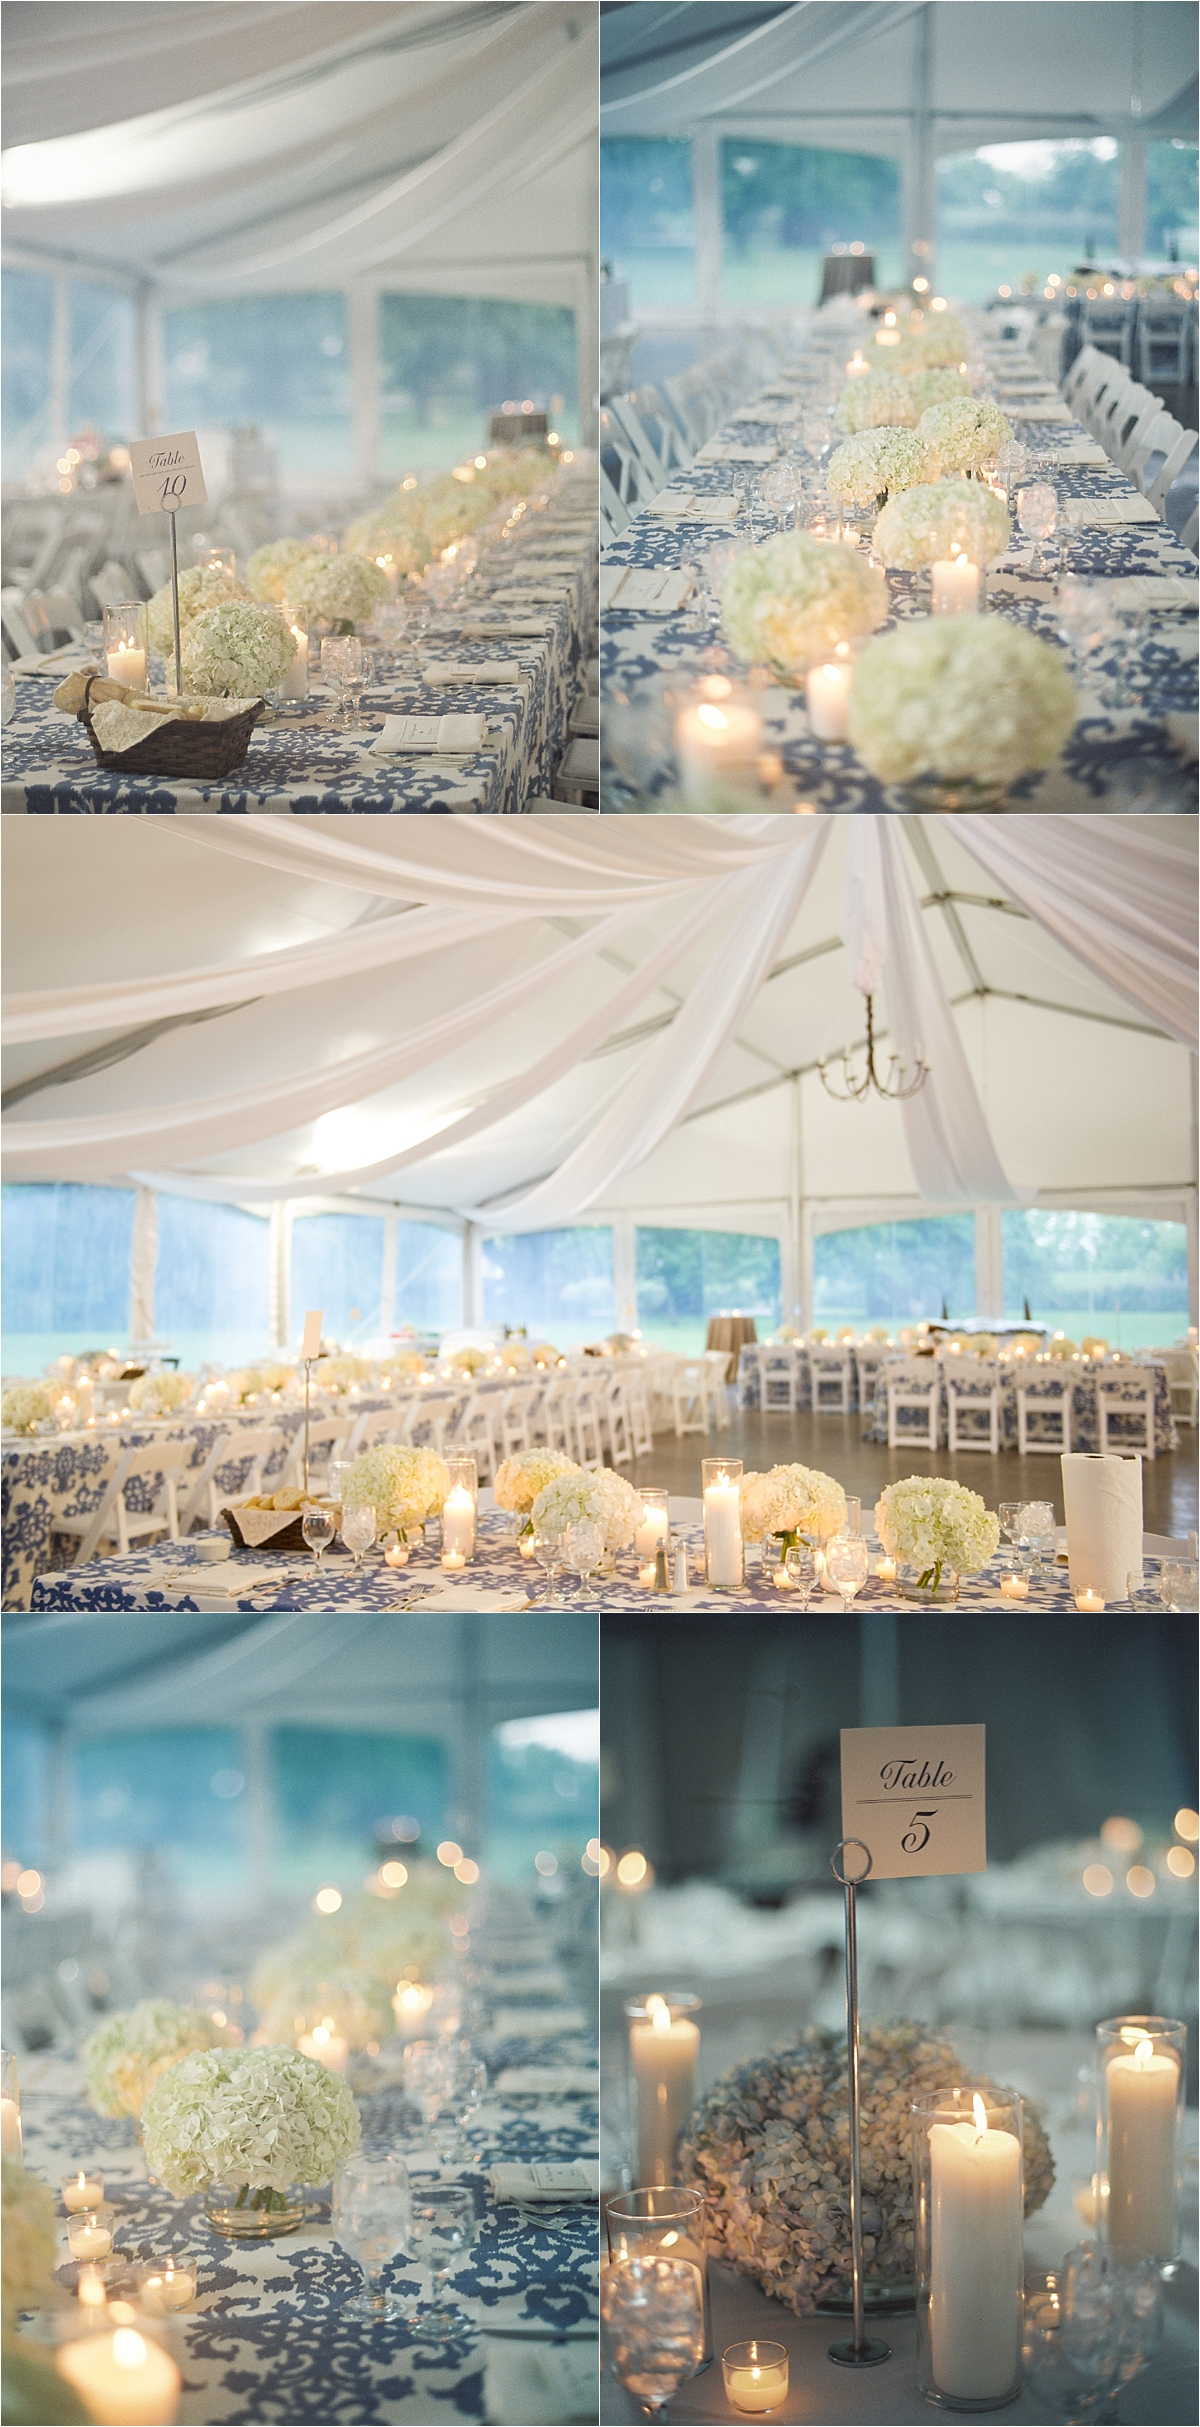 White and blue table linens with white hydrangeas lining the table with tea lights and candles